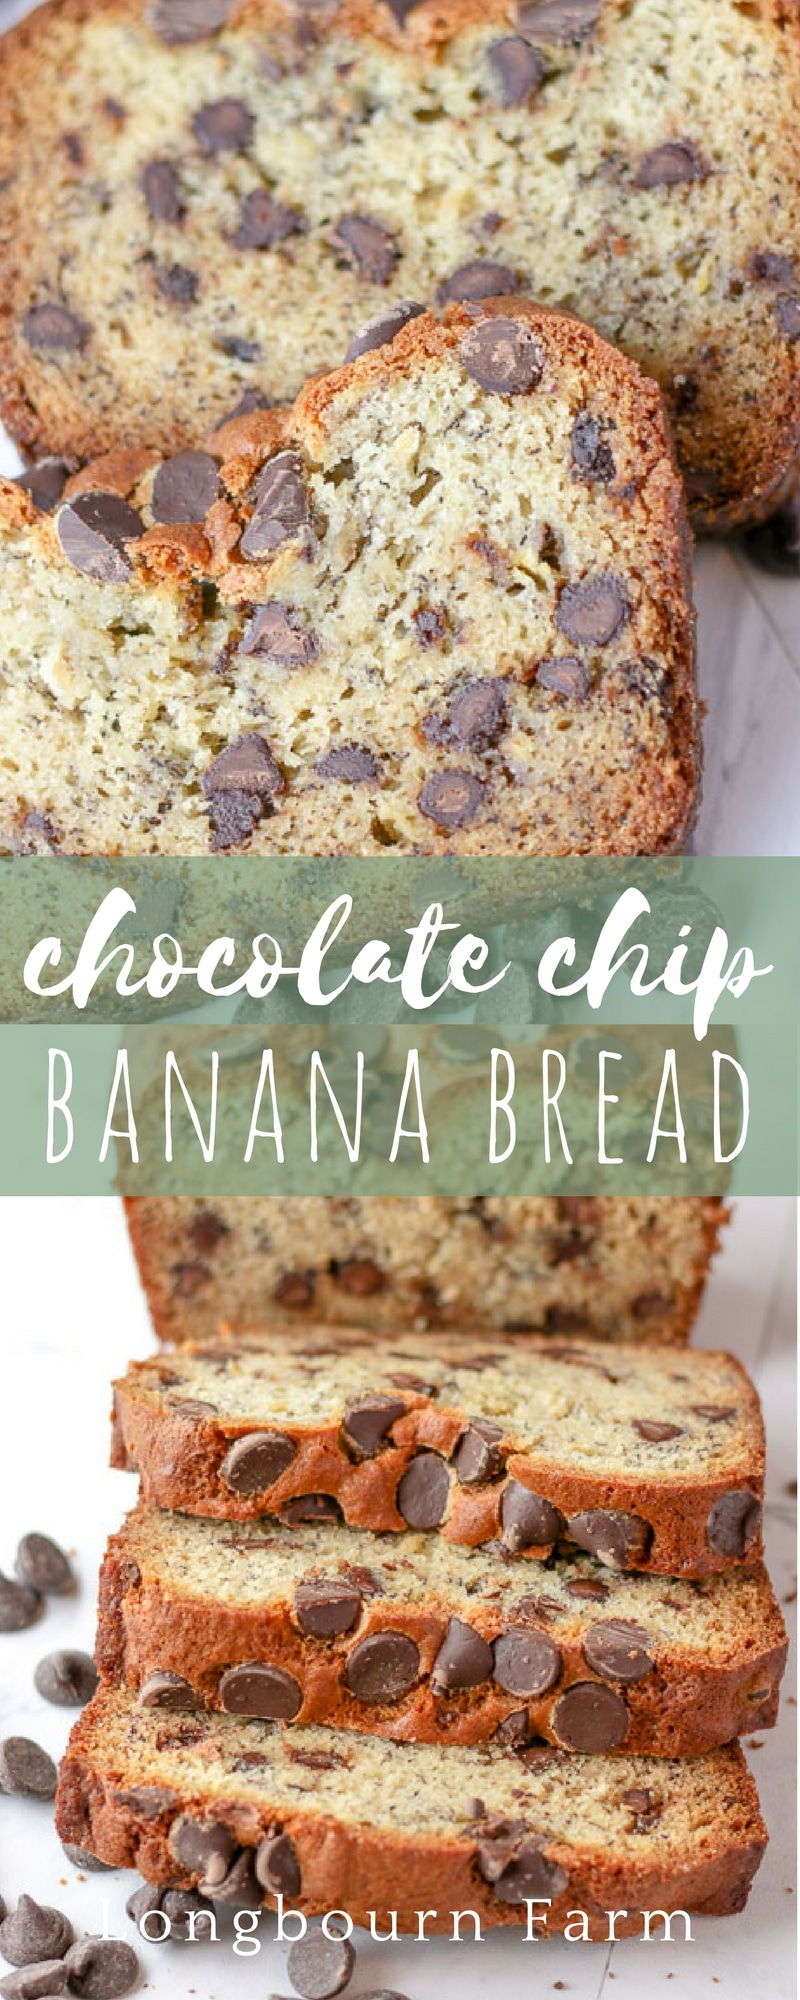 This chocolate chip banana bread recipe is an old family favorite that we have loved for years. This recipe is perfect, moist, and turns out every time.